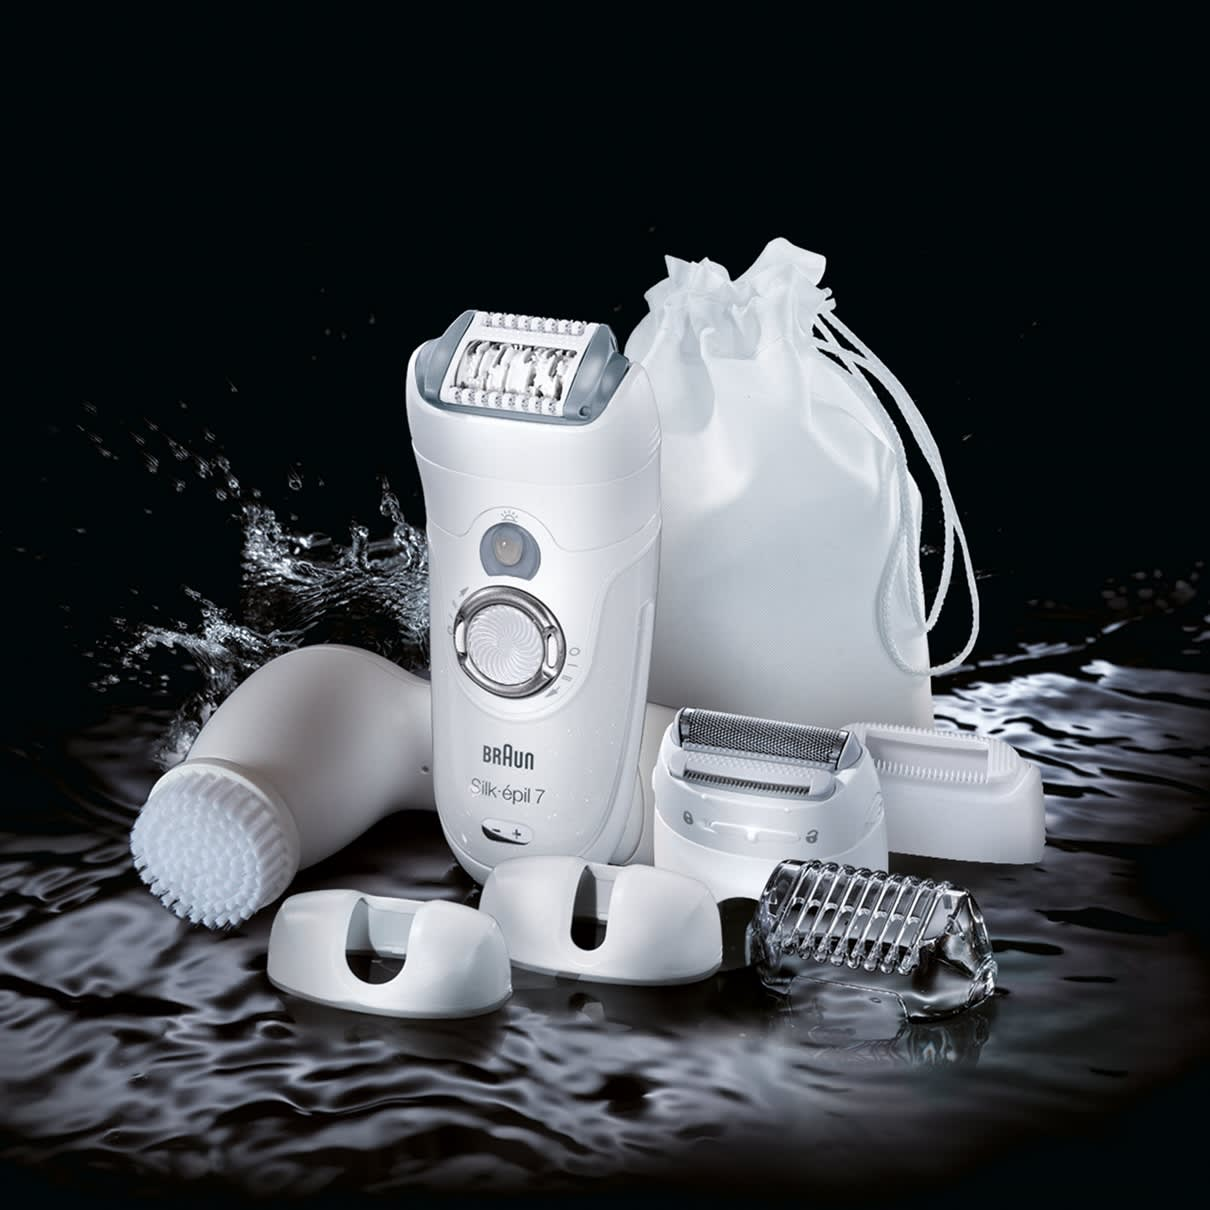 Silk-épil 7 7569 Epilator - What´s in the Box